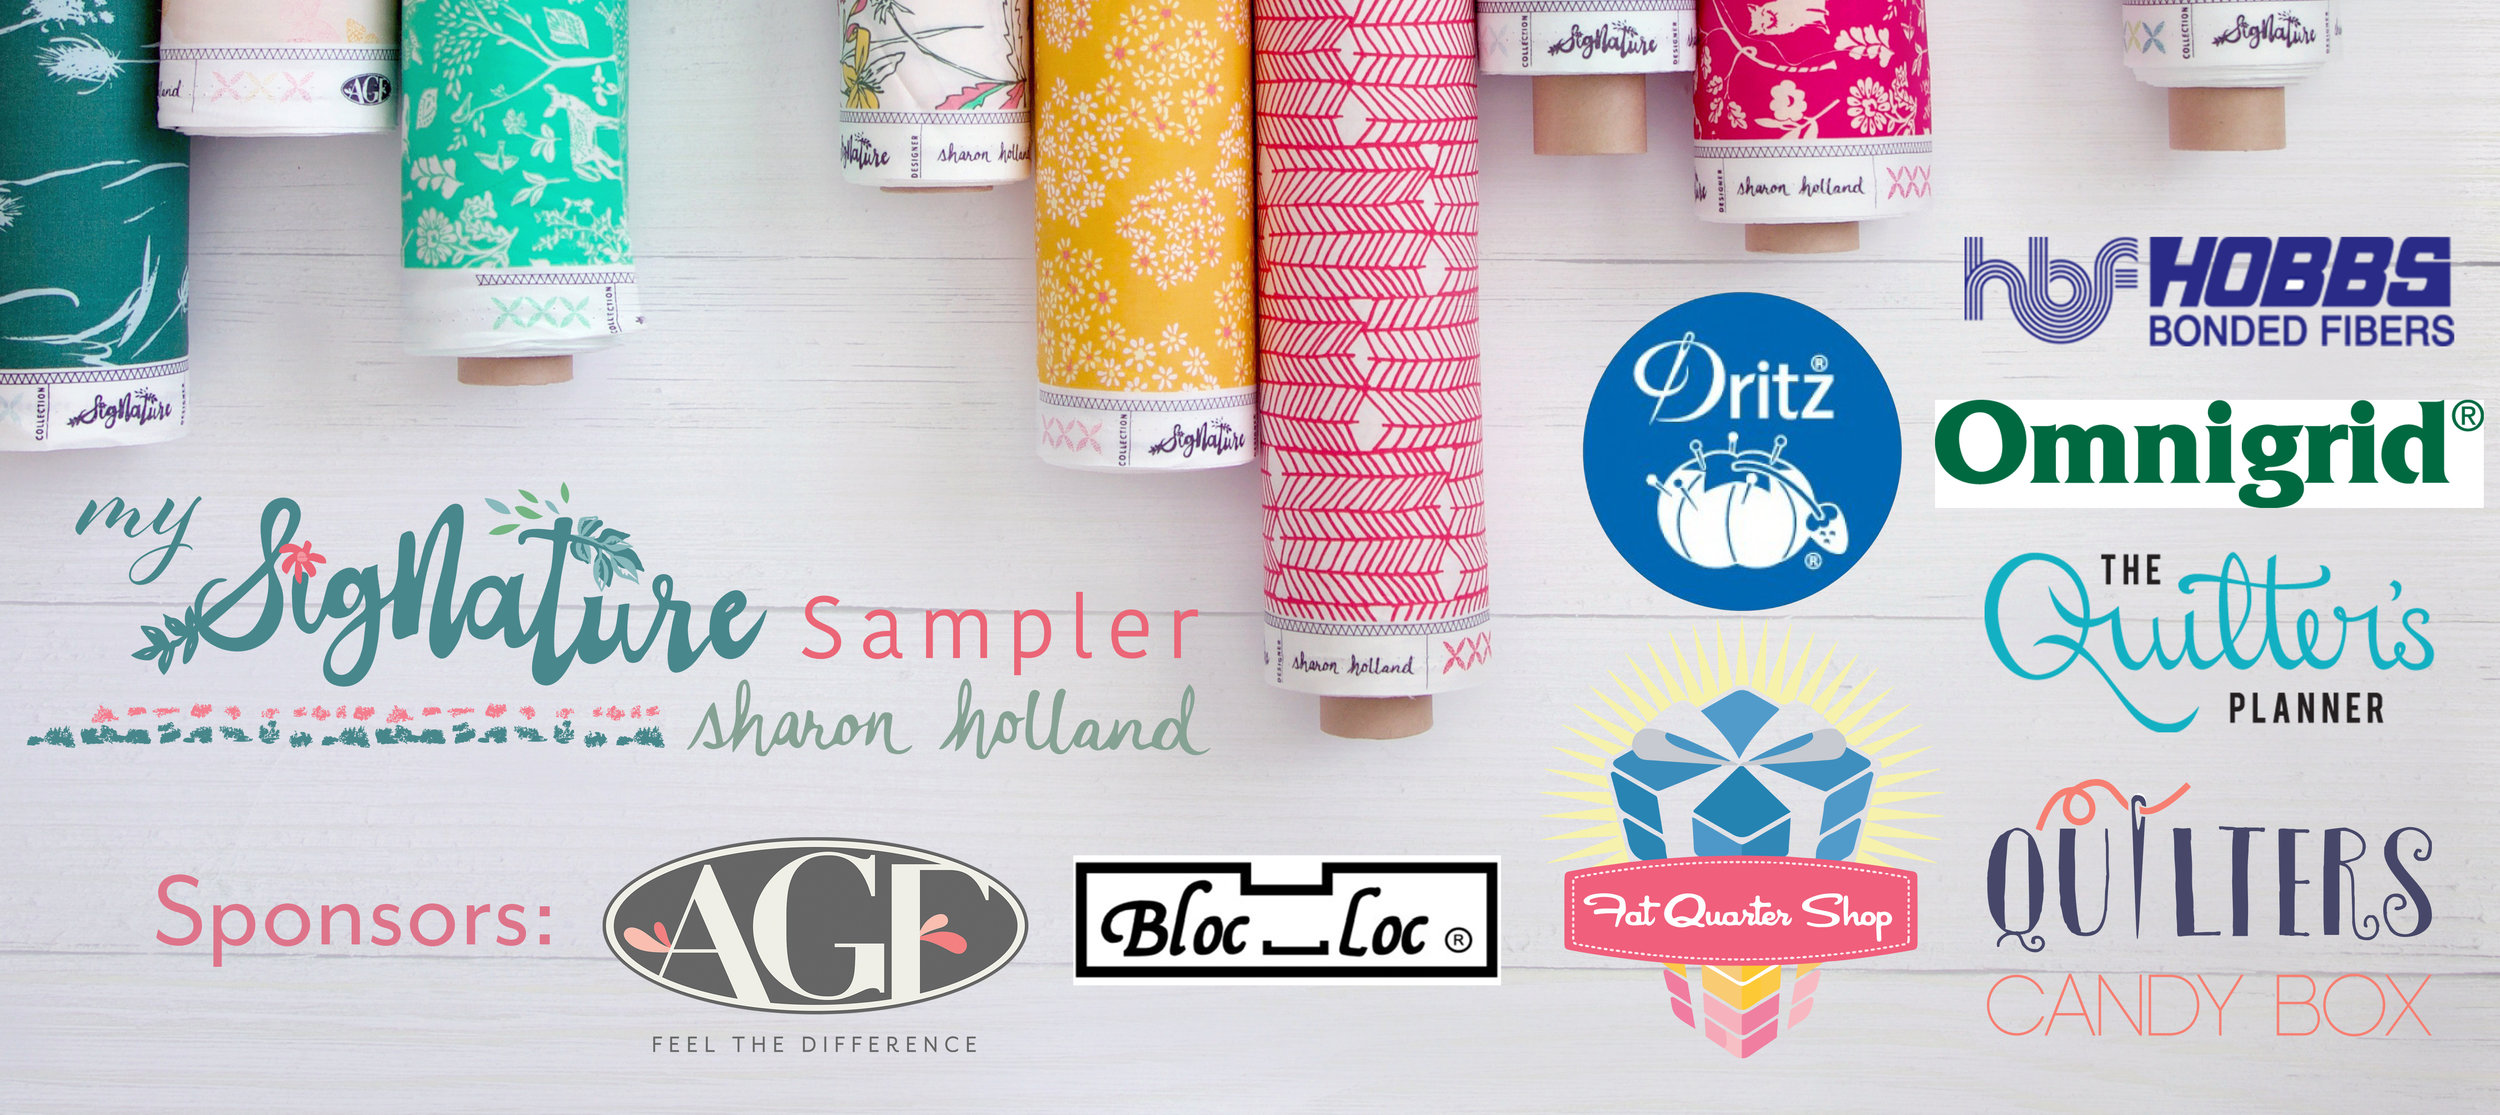 Art Gallery Fabrics  |  Hobbs Batting  |  The Quilter's Planner  |  Quilters Candy Box  |  Bloc_Loc  |  Dritz  |  Omnigrid  |  Fat Quarter Shop